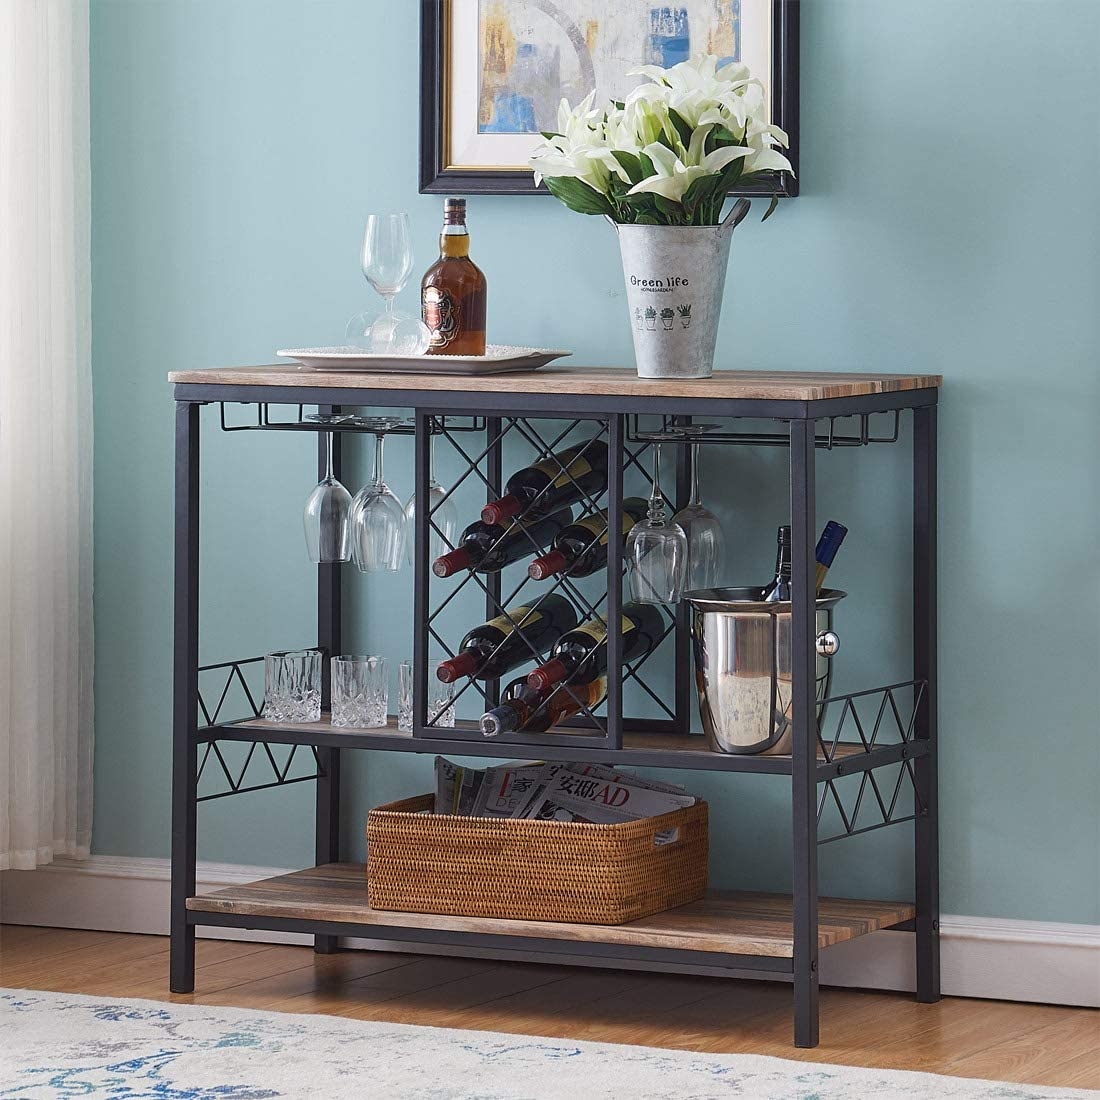 Furniture Industrial Wine Rack Table with Glass Holder